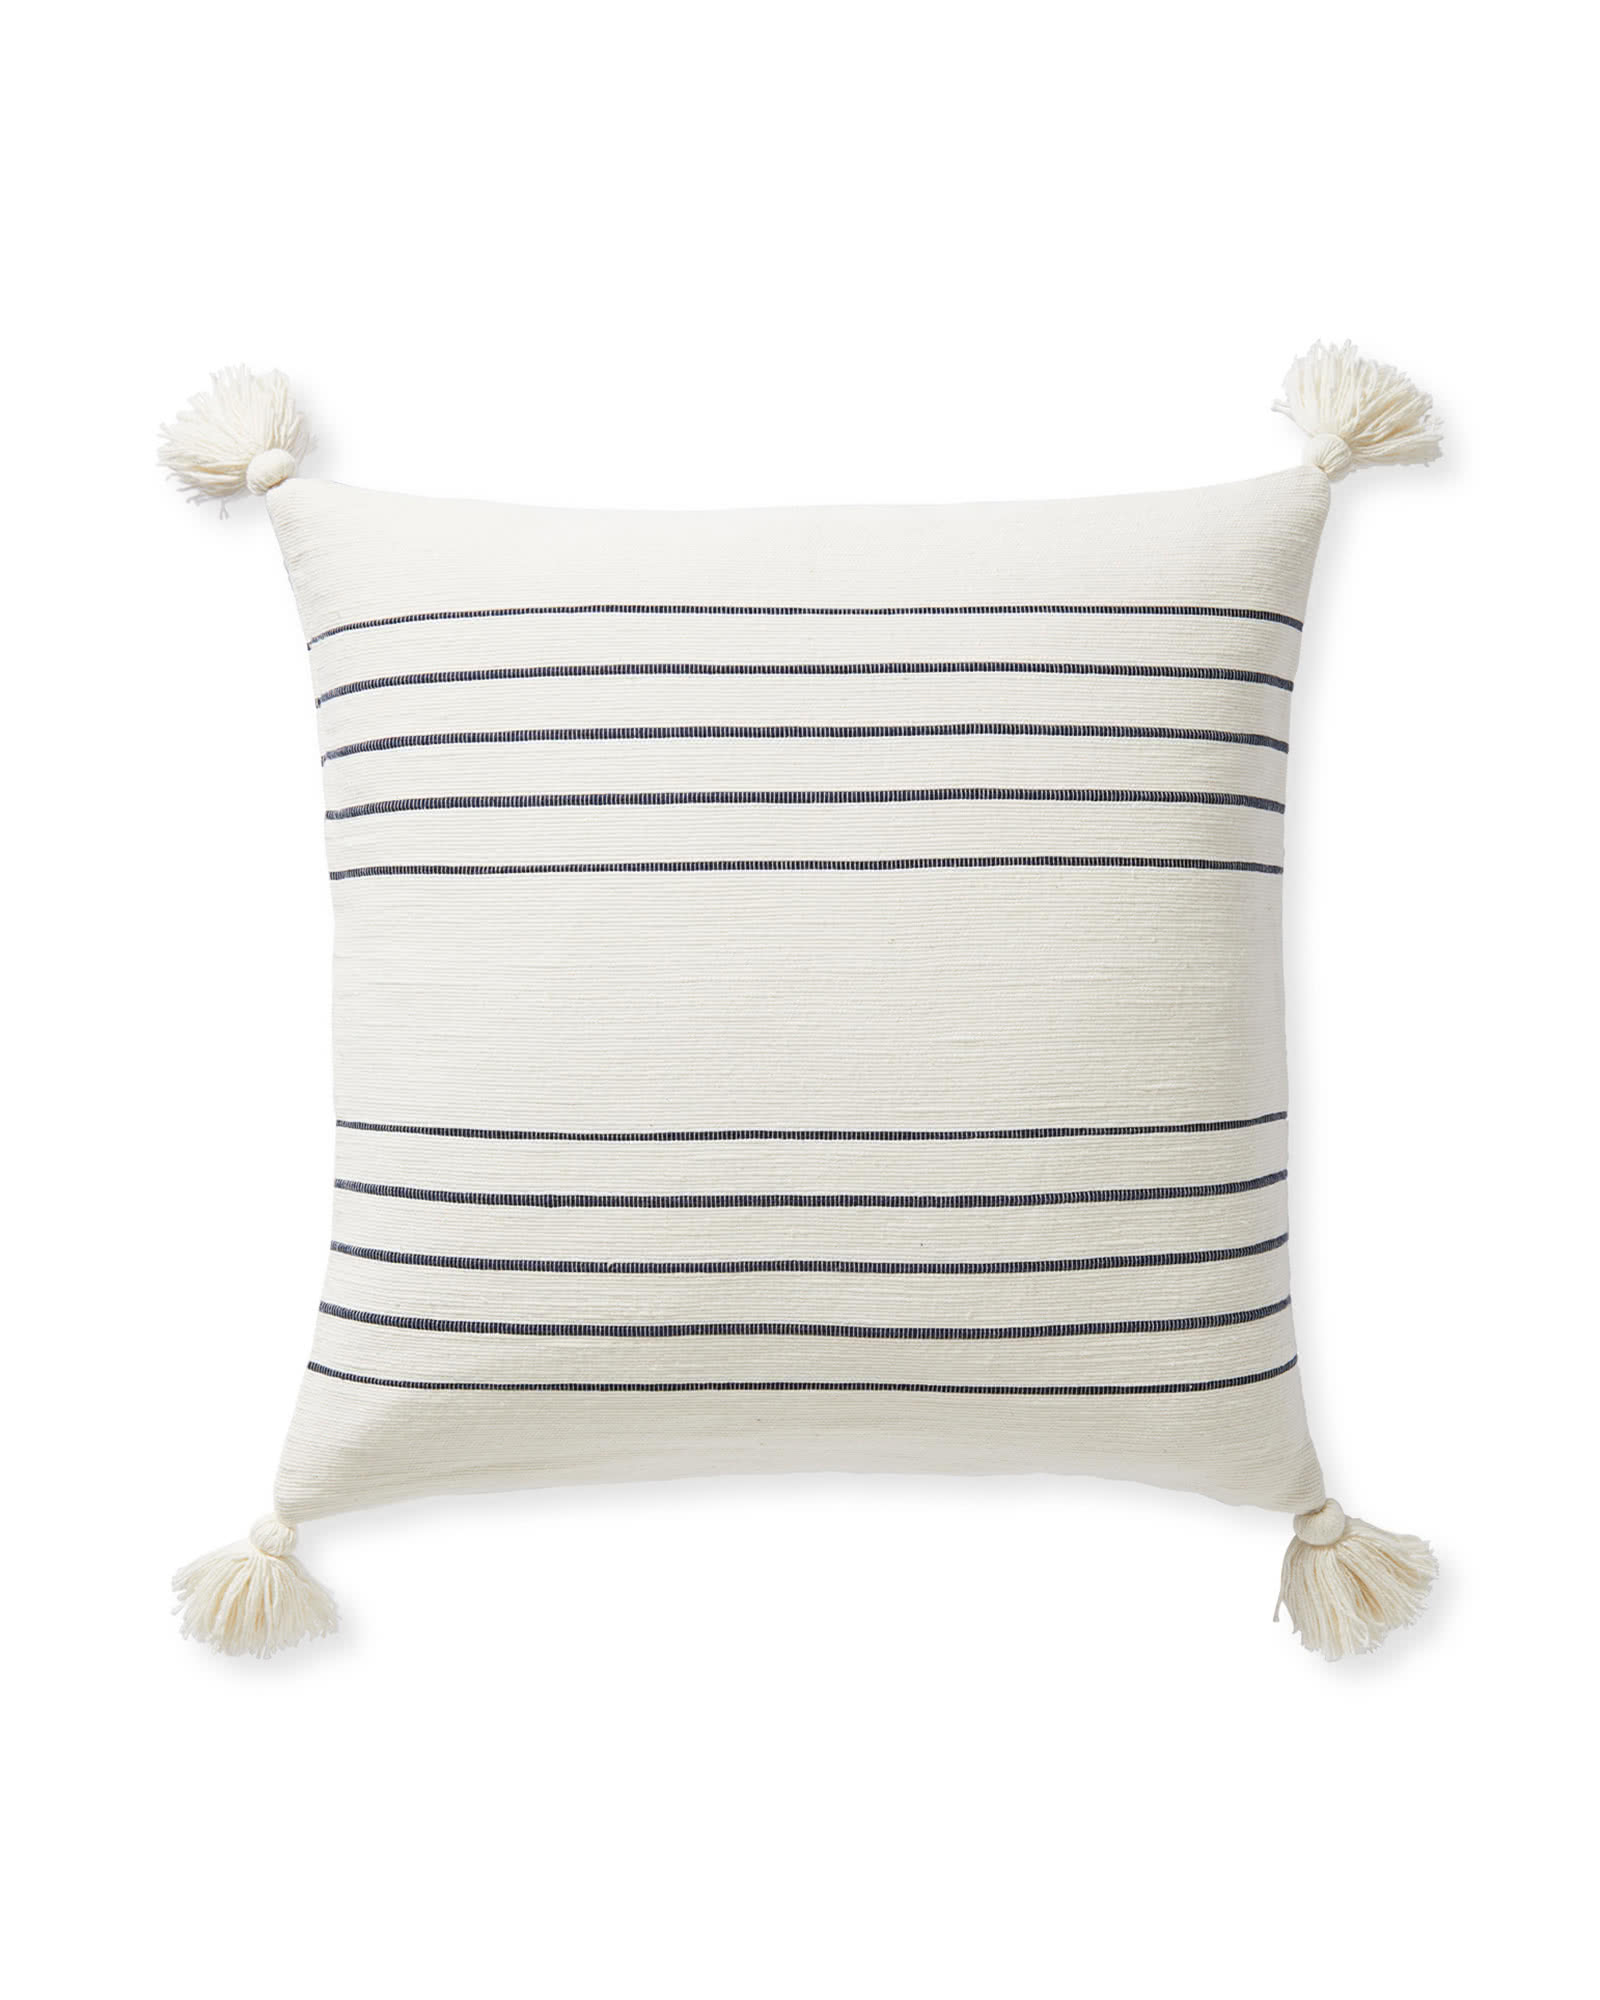 Del Mar Pillow Cover, Navy